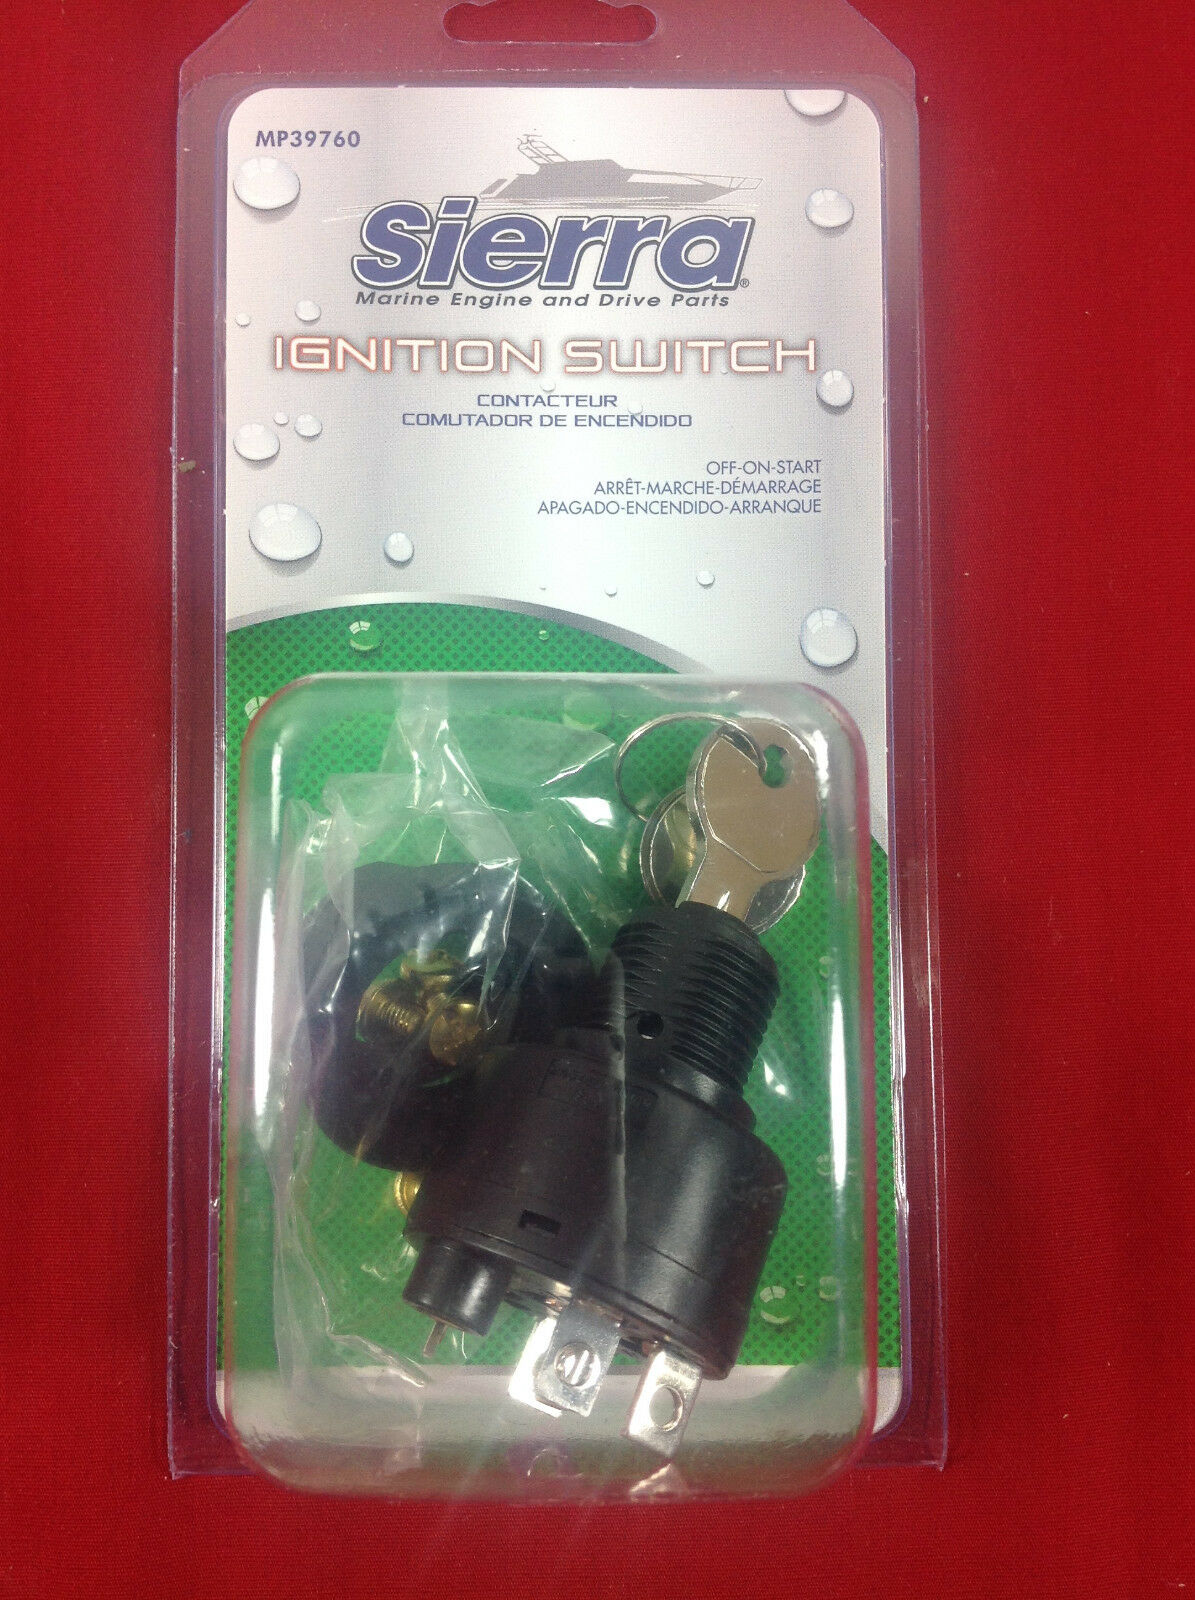 393301 Omc Ignition Wiring Diagram Will Be A Thing Boat Starter Switch Johnson Outboard Marine Mp39760 Rh Picclick Com Cobra Engine Key